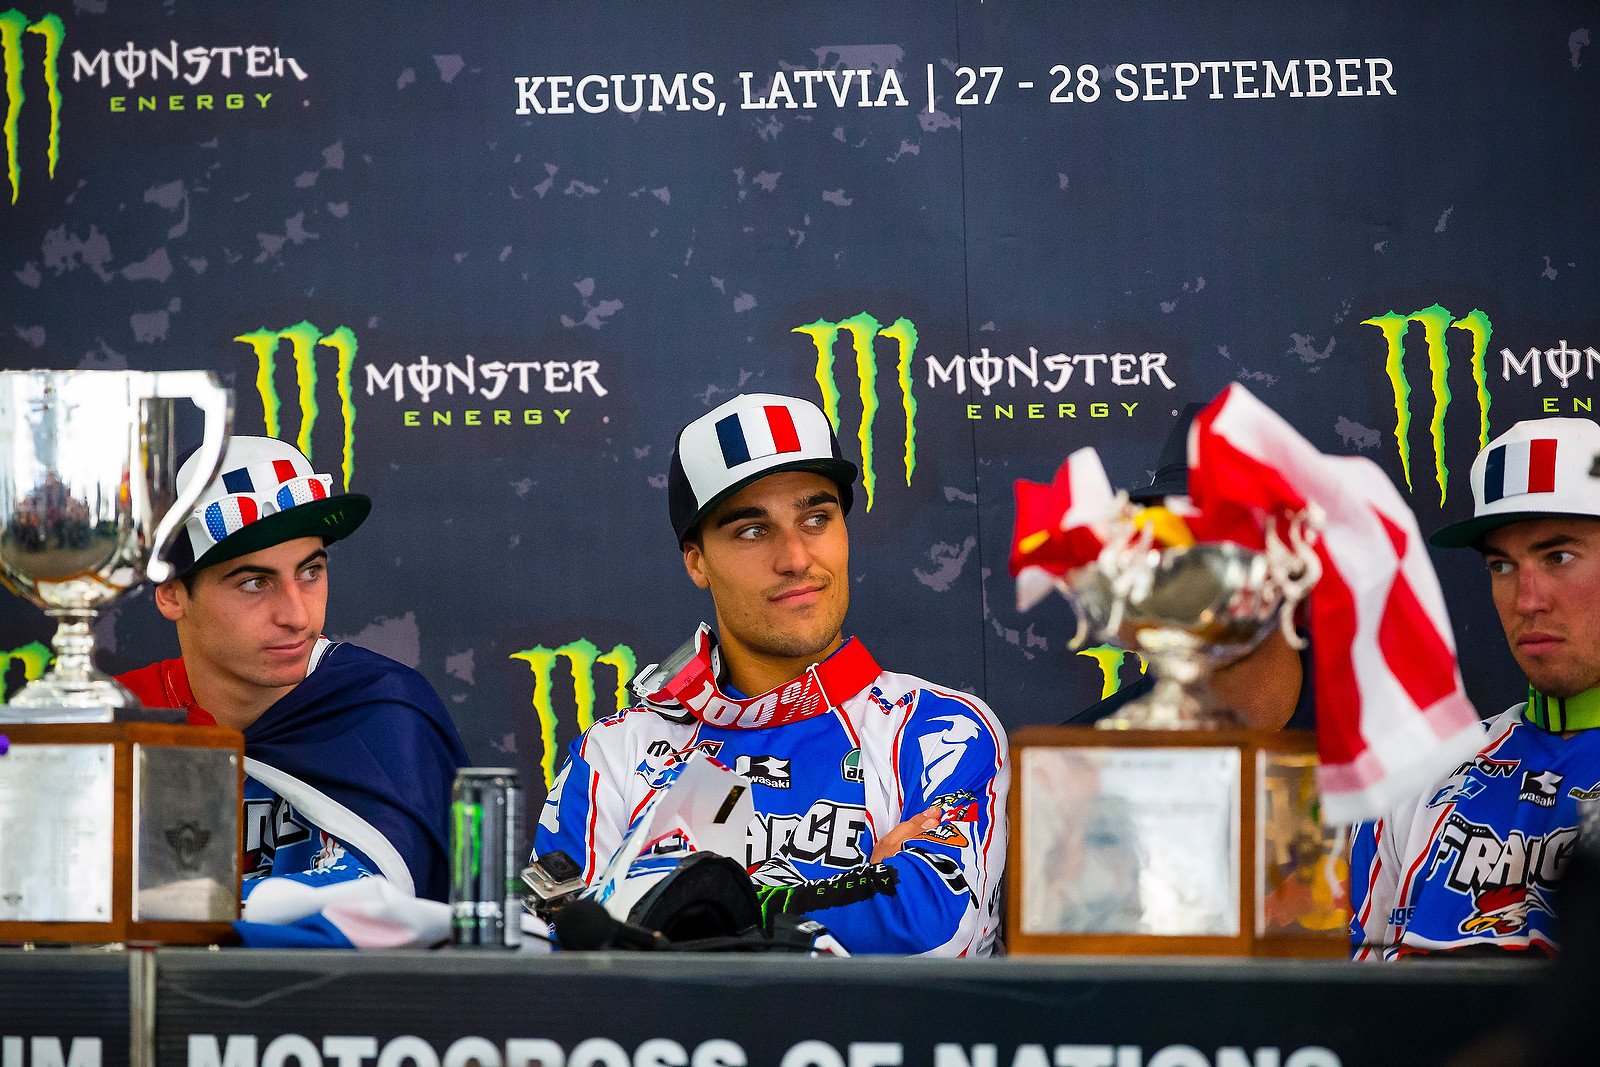 Press conference - kardy - Motocross Pictures - Vital MX